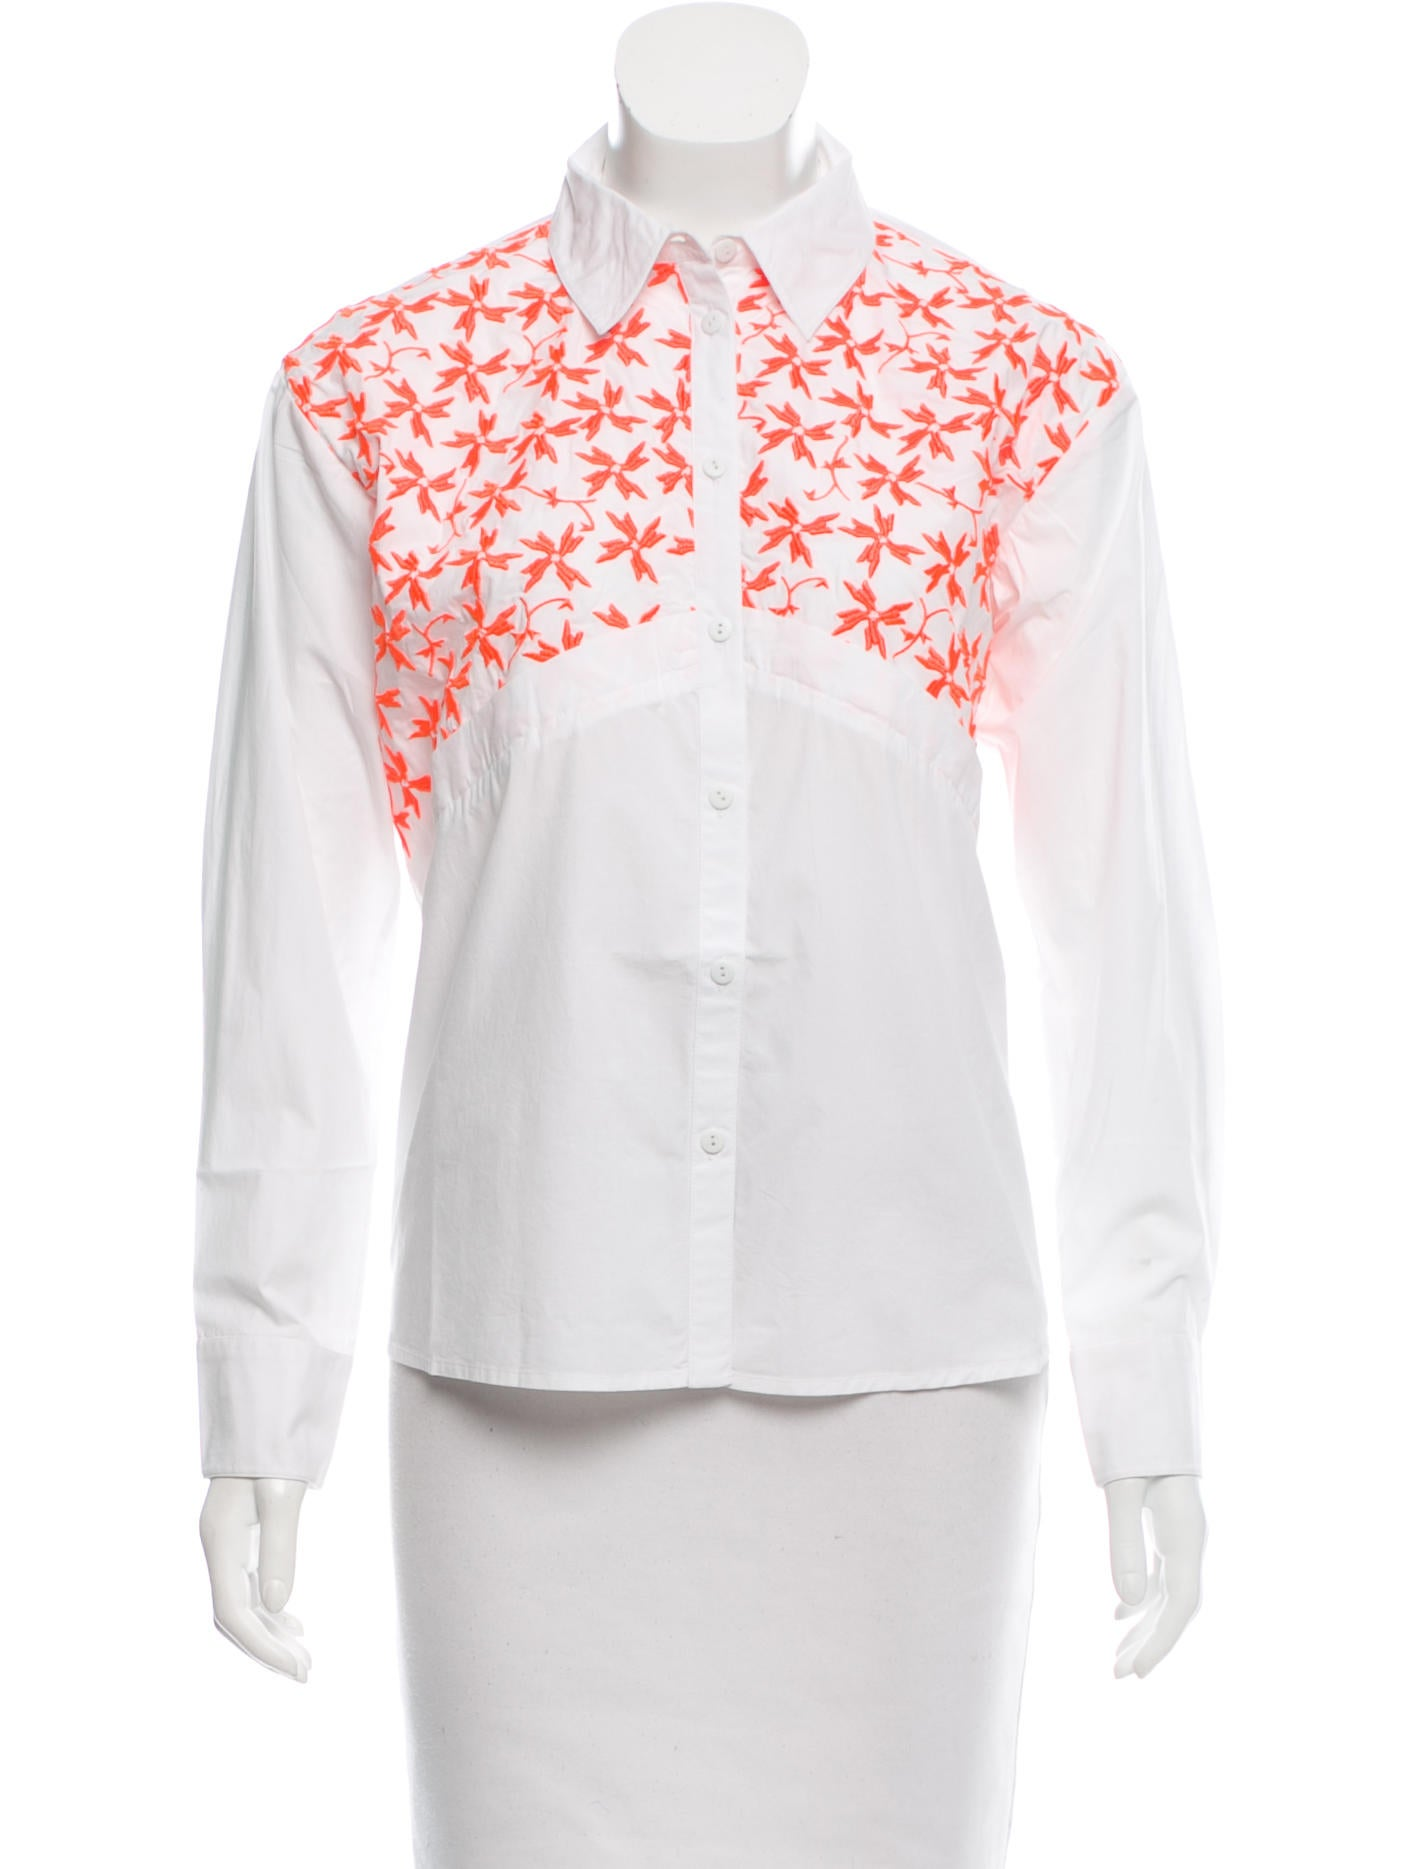 Tanya taylor embroidered button up top w tags clothing